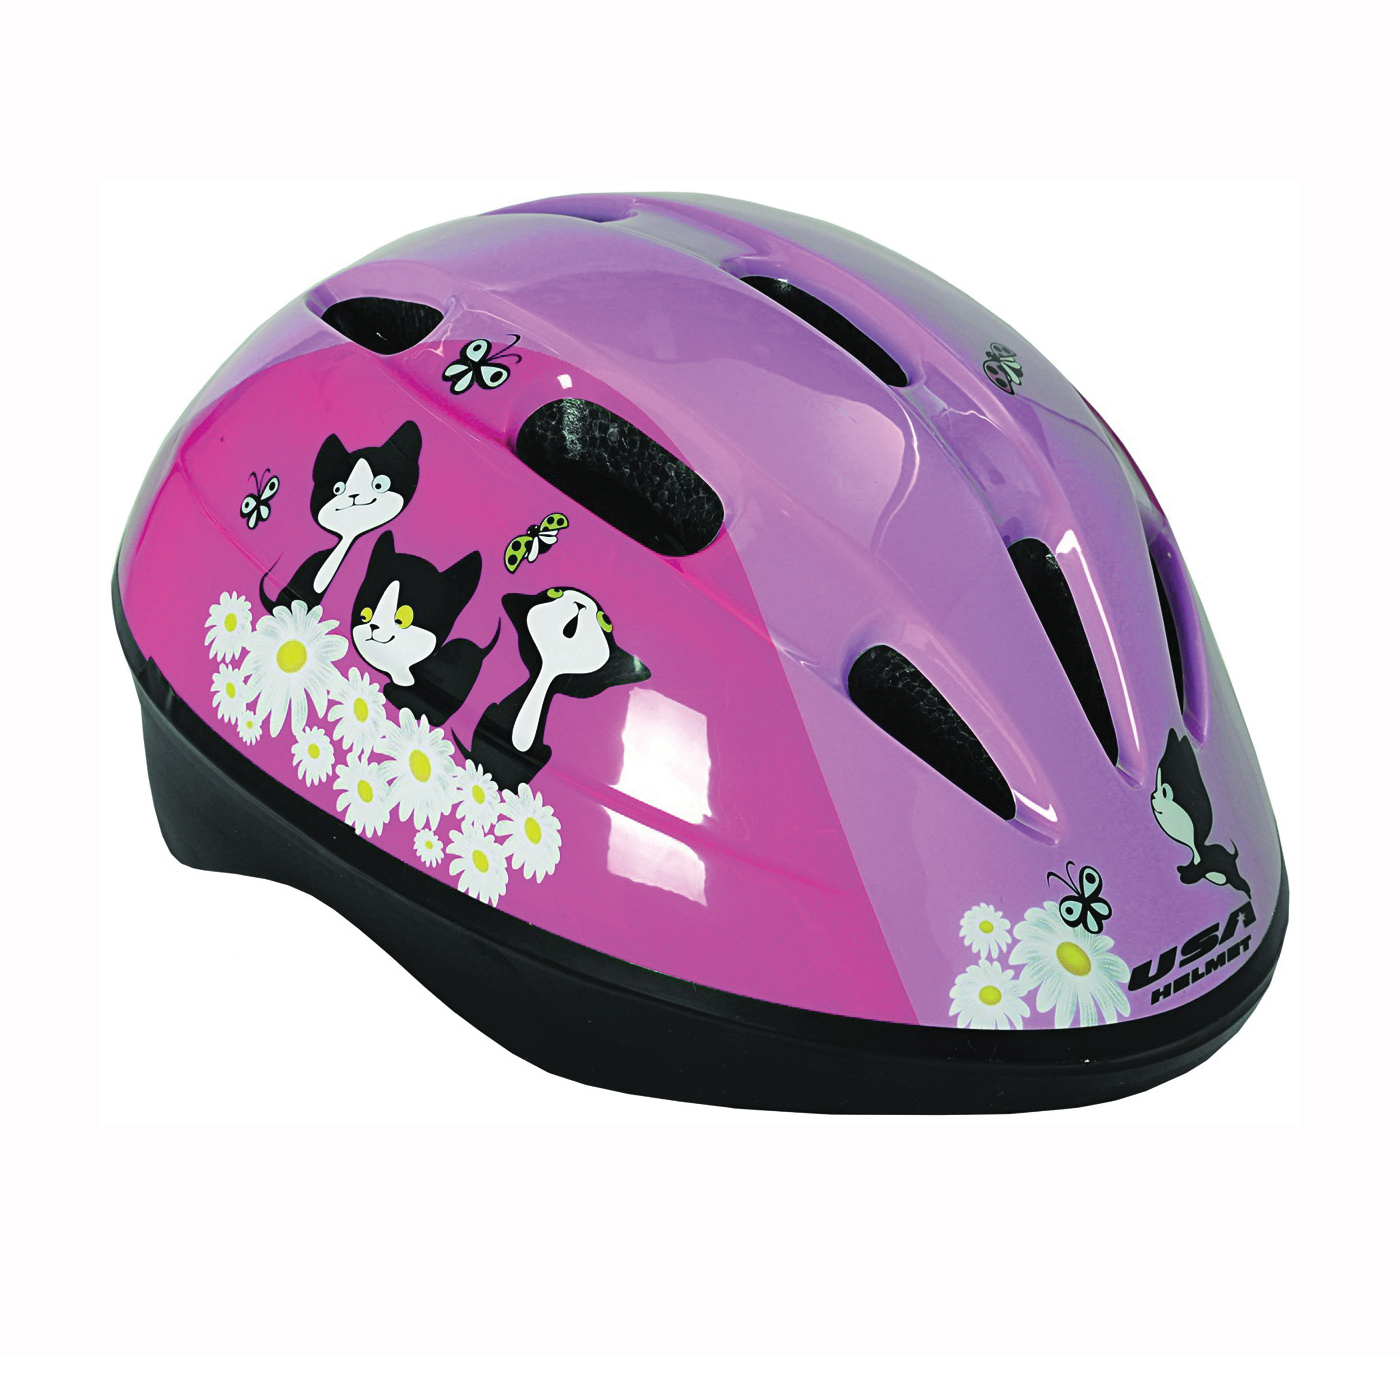 Picture of Kent 64101 Toddler Helmet, Pink, For: 19 to 21-1/2 in Head Size and Toddlers